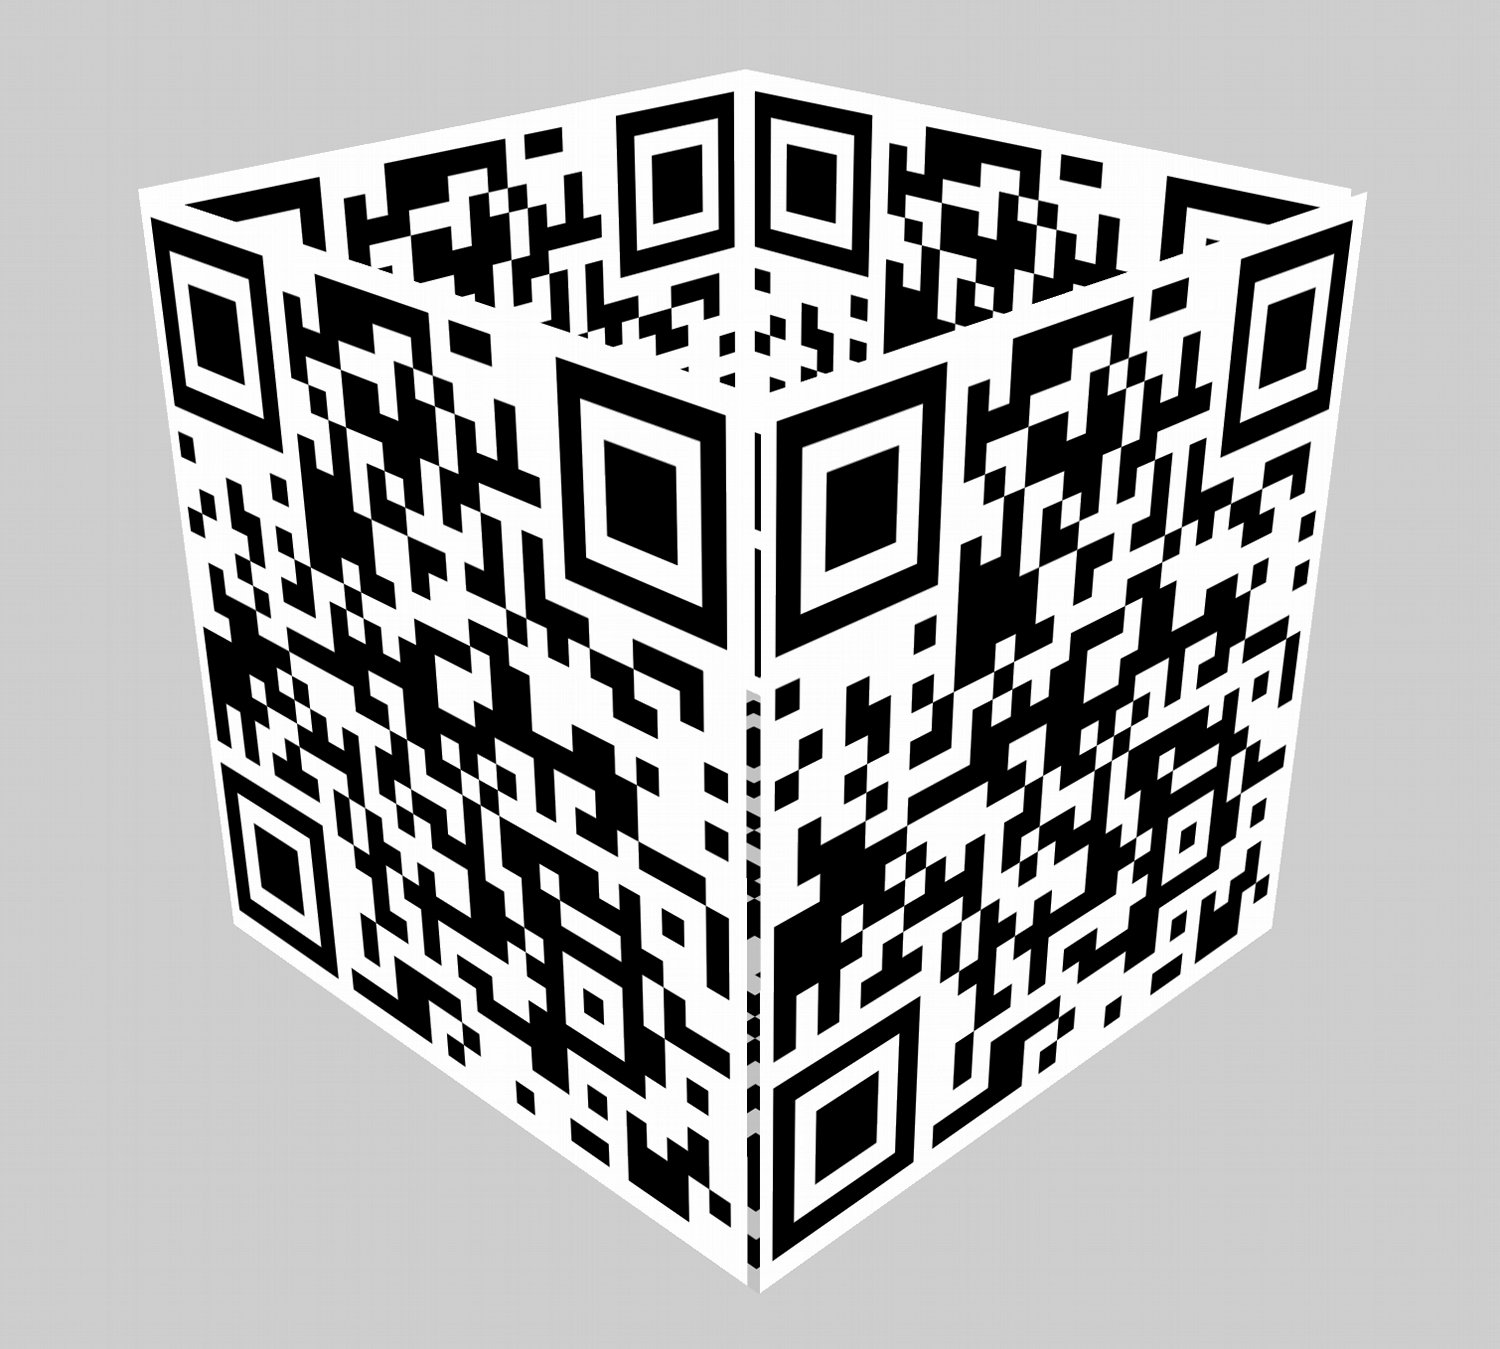 - My first attempt at a QR cube. -  - Art and the Zen of QR Codes - QaRt - making art from QR codes. - - art  - photography - by Tony Karp